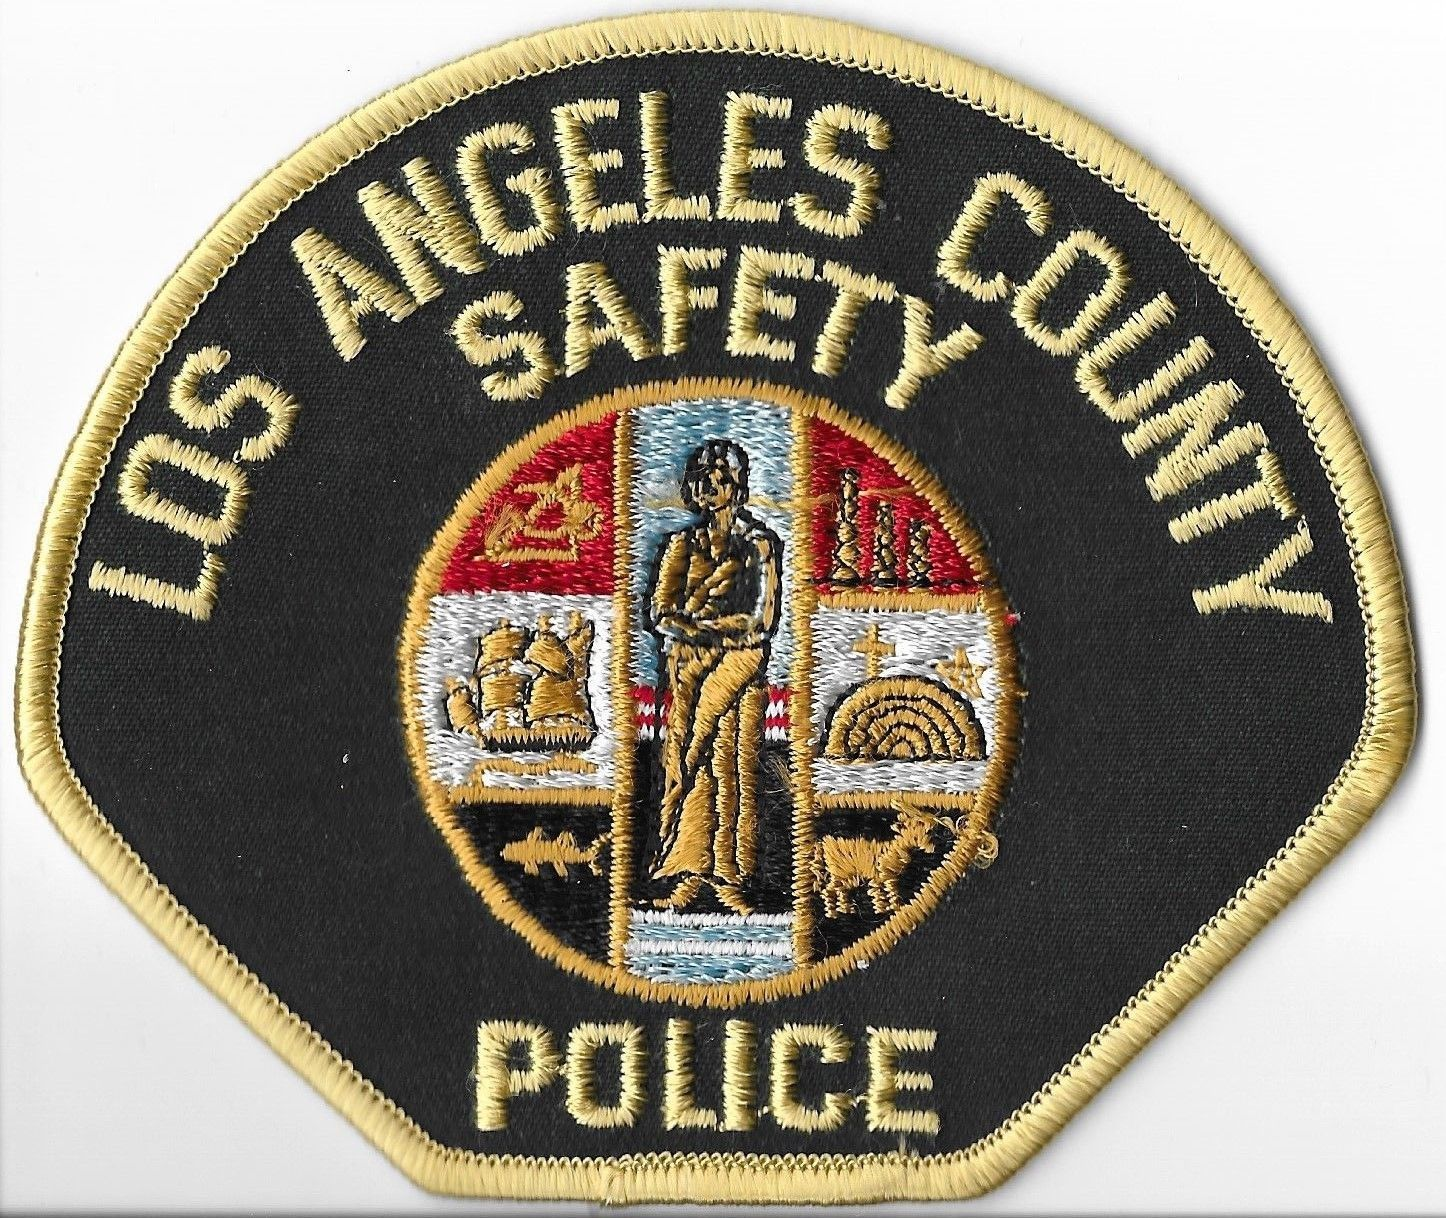 Los Angeles County California Safety Police Shoulder Patch 5 75 Picclick